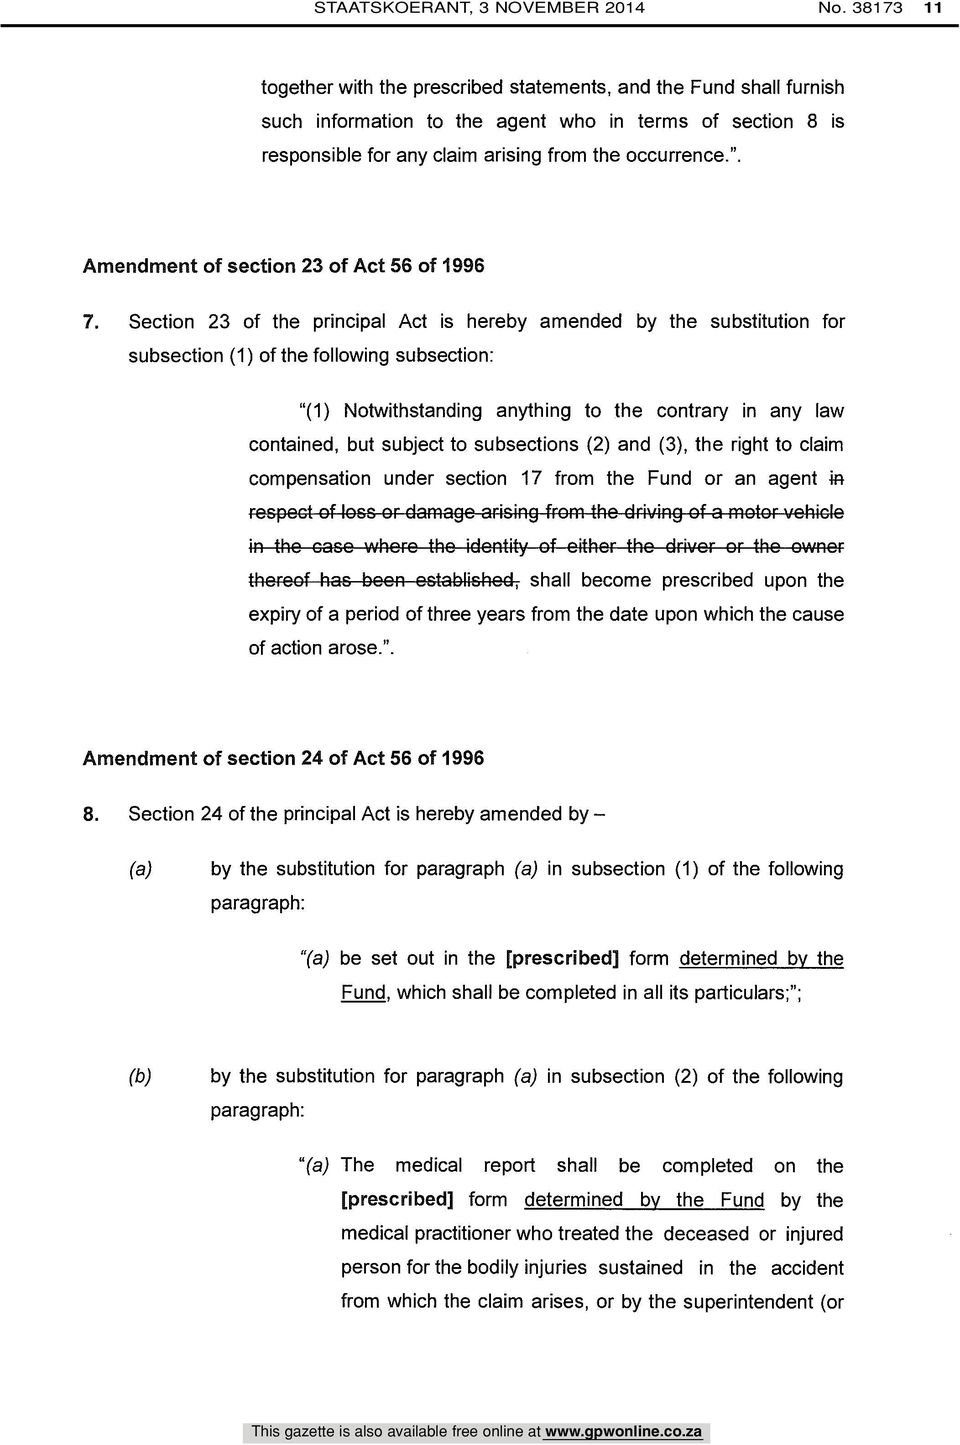 Amendment of section 23 of Act 56 of 1996 7.